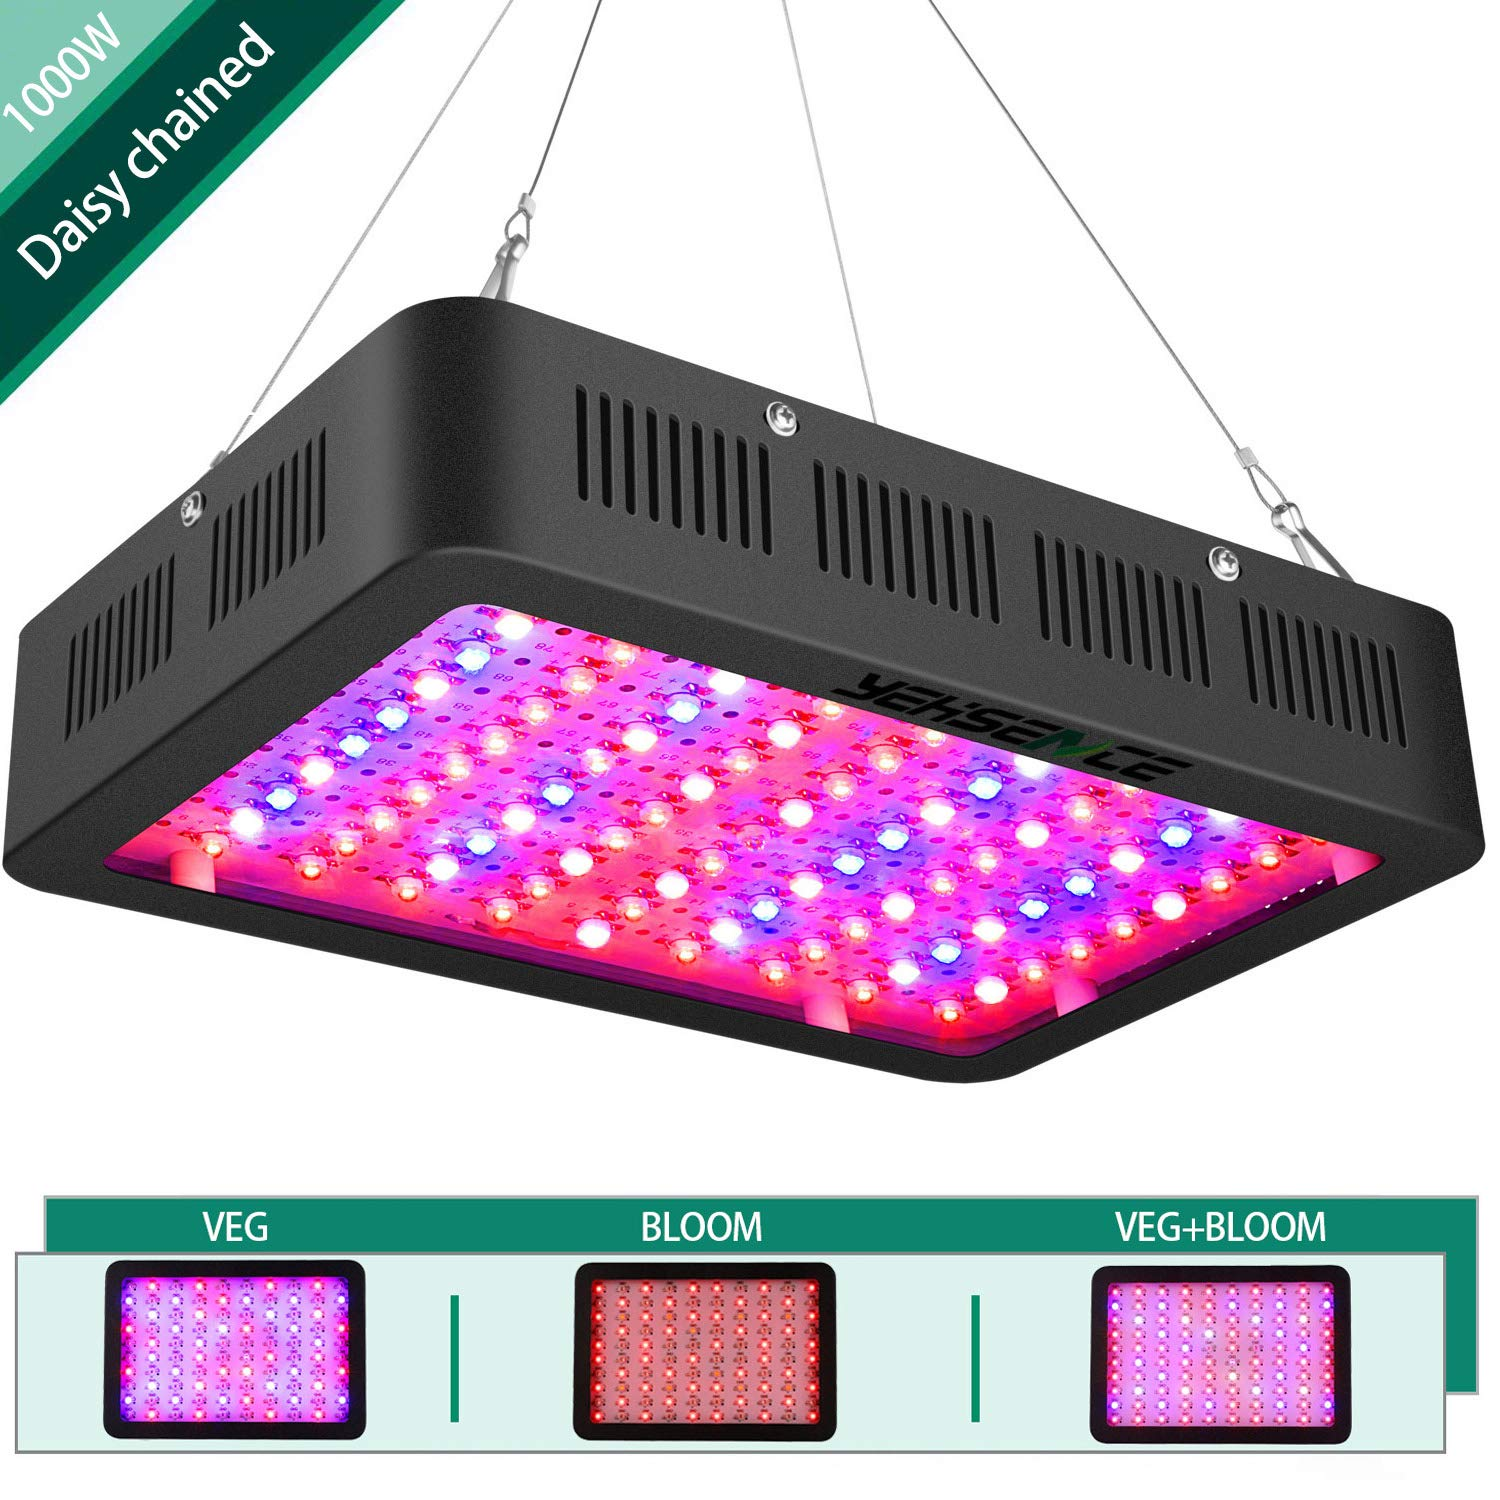 1000w LED Grow Light Connected in Series,Yehsence (15W LED) 3 Chips LED Plant Growing Lamp Full Spectrum with Adjustable Rope for Indoor Plants Veg and Flower/Replace Hps Grow Light Fixture